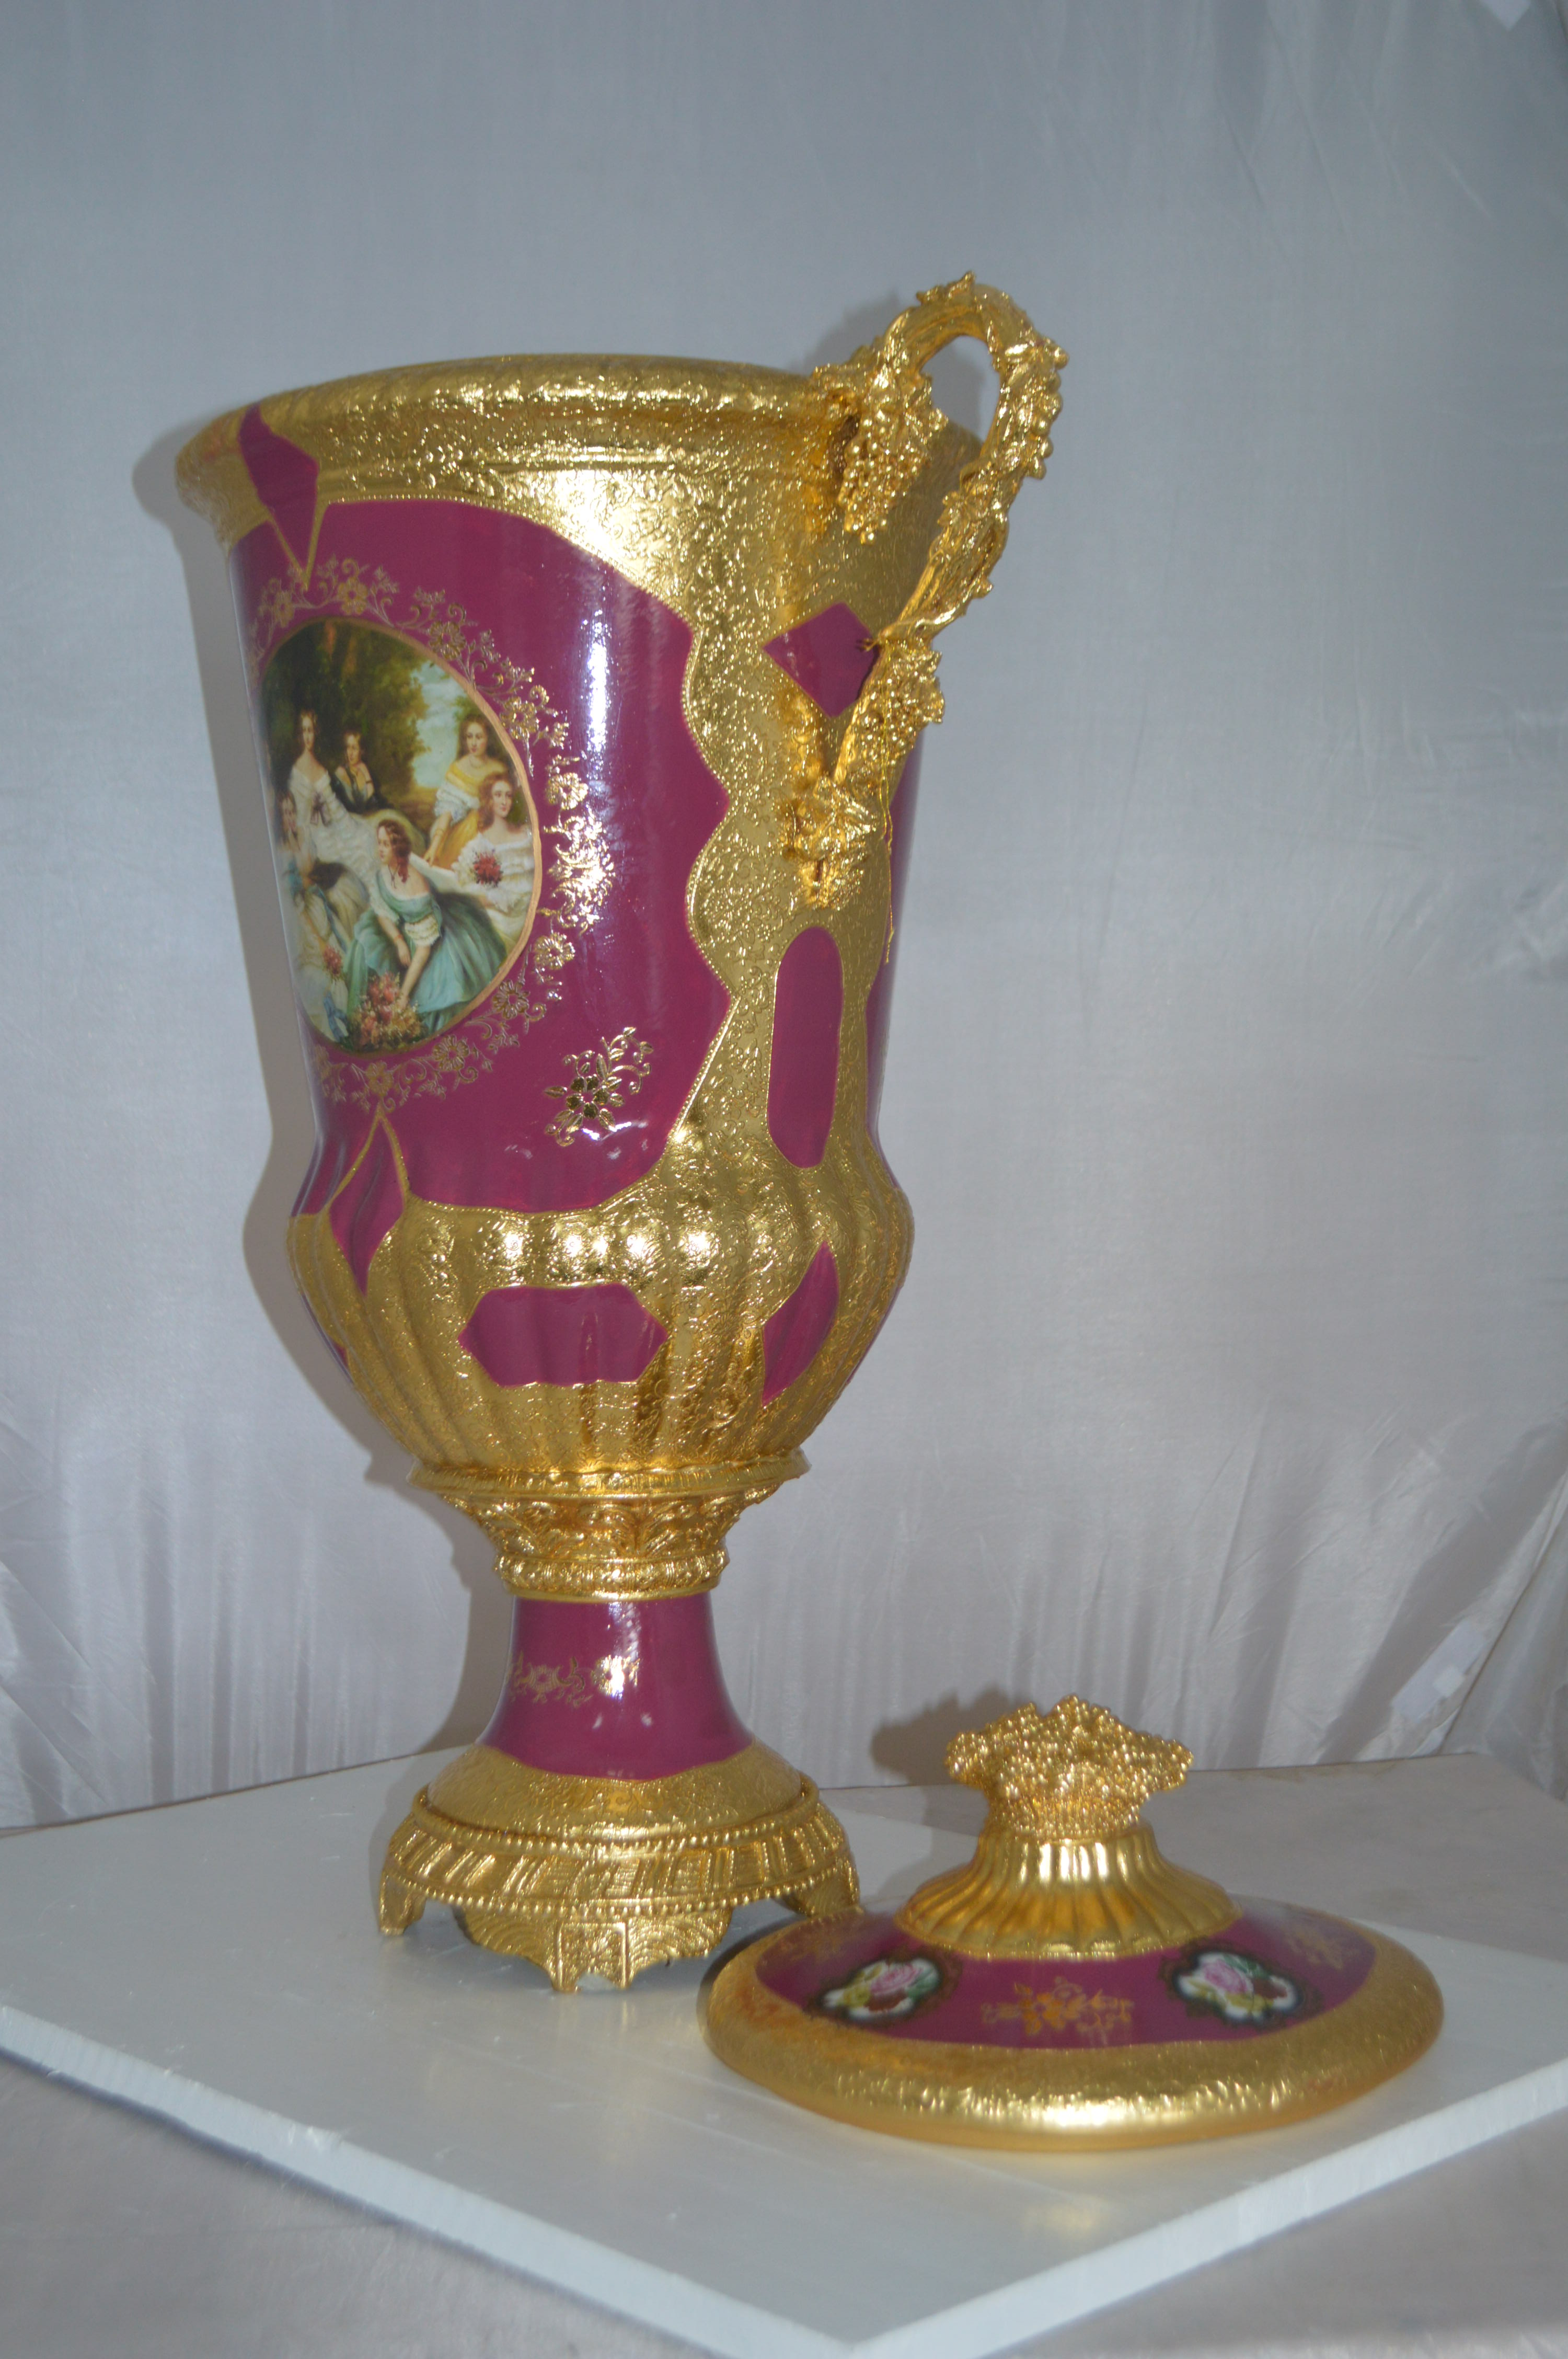 Decoration Vase With Cover Gold And Pink Size 23 L X 16 W X 33 H Nifao